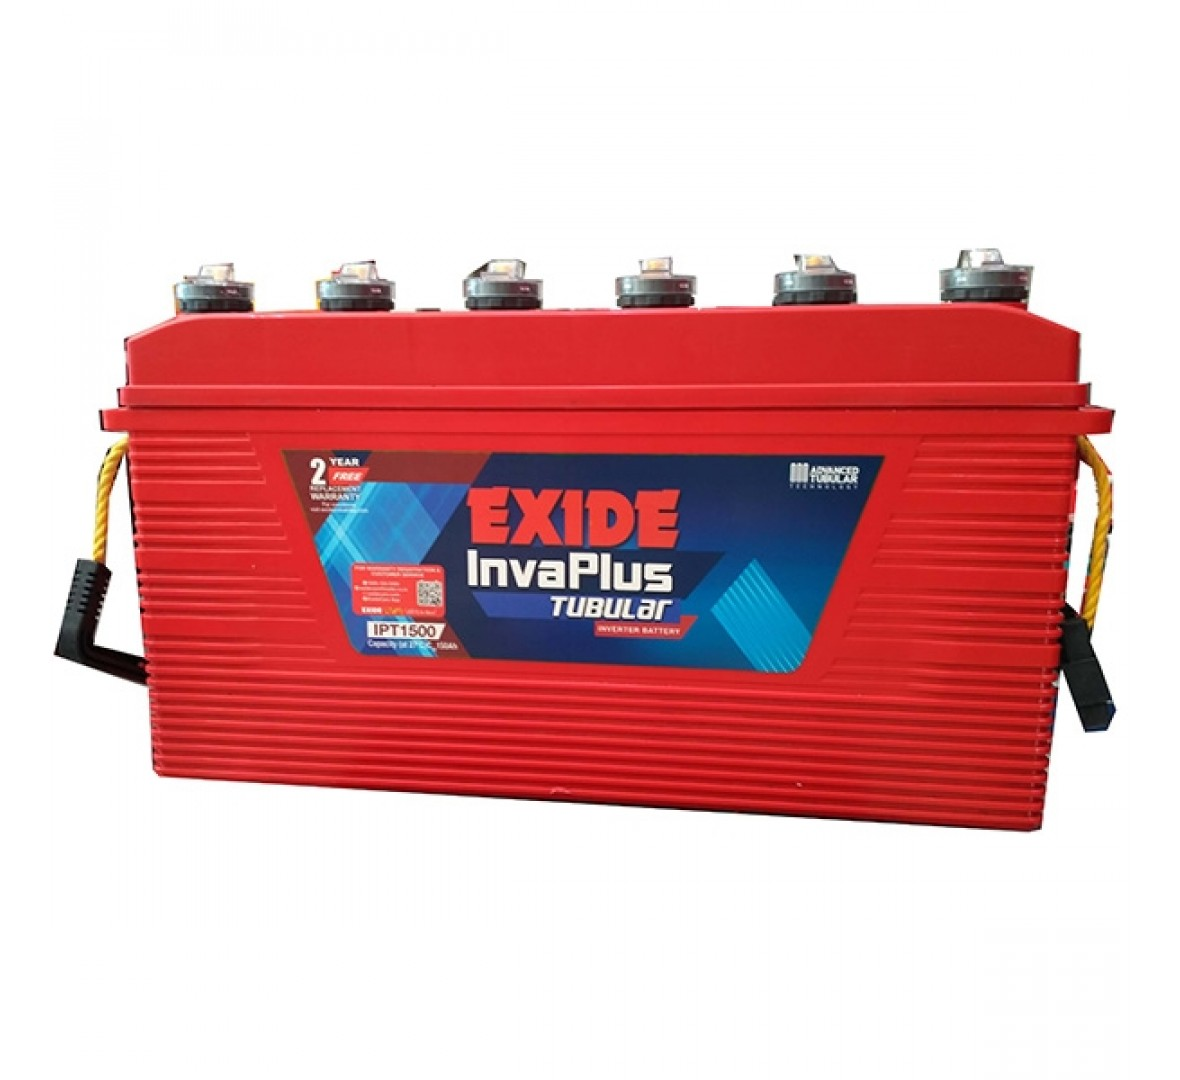 Exide Invaplus Ipt1000 100Ah Inverter Battery